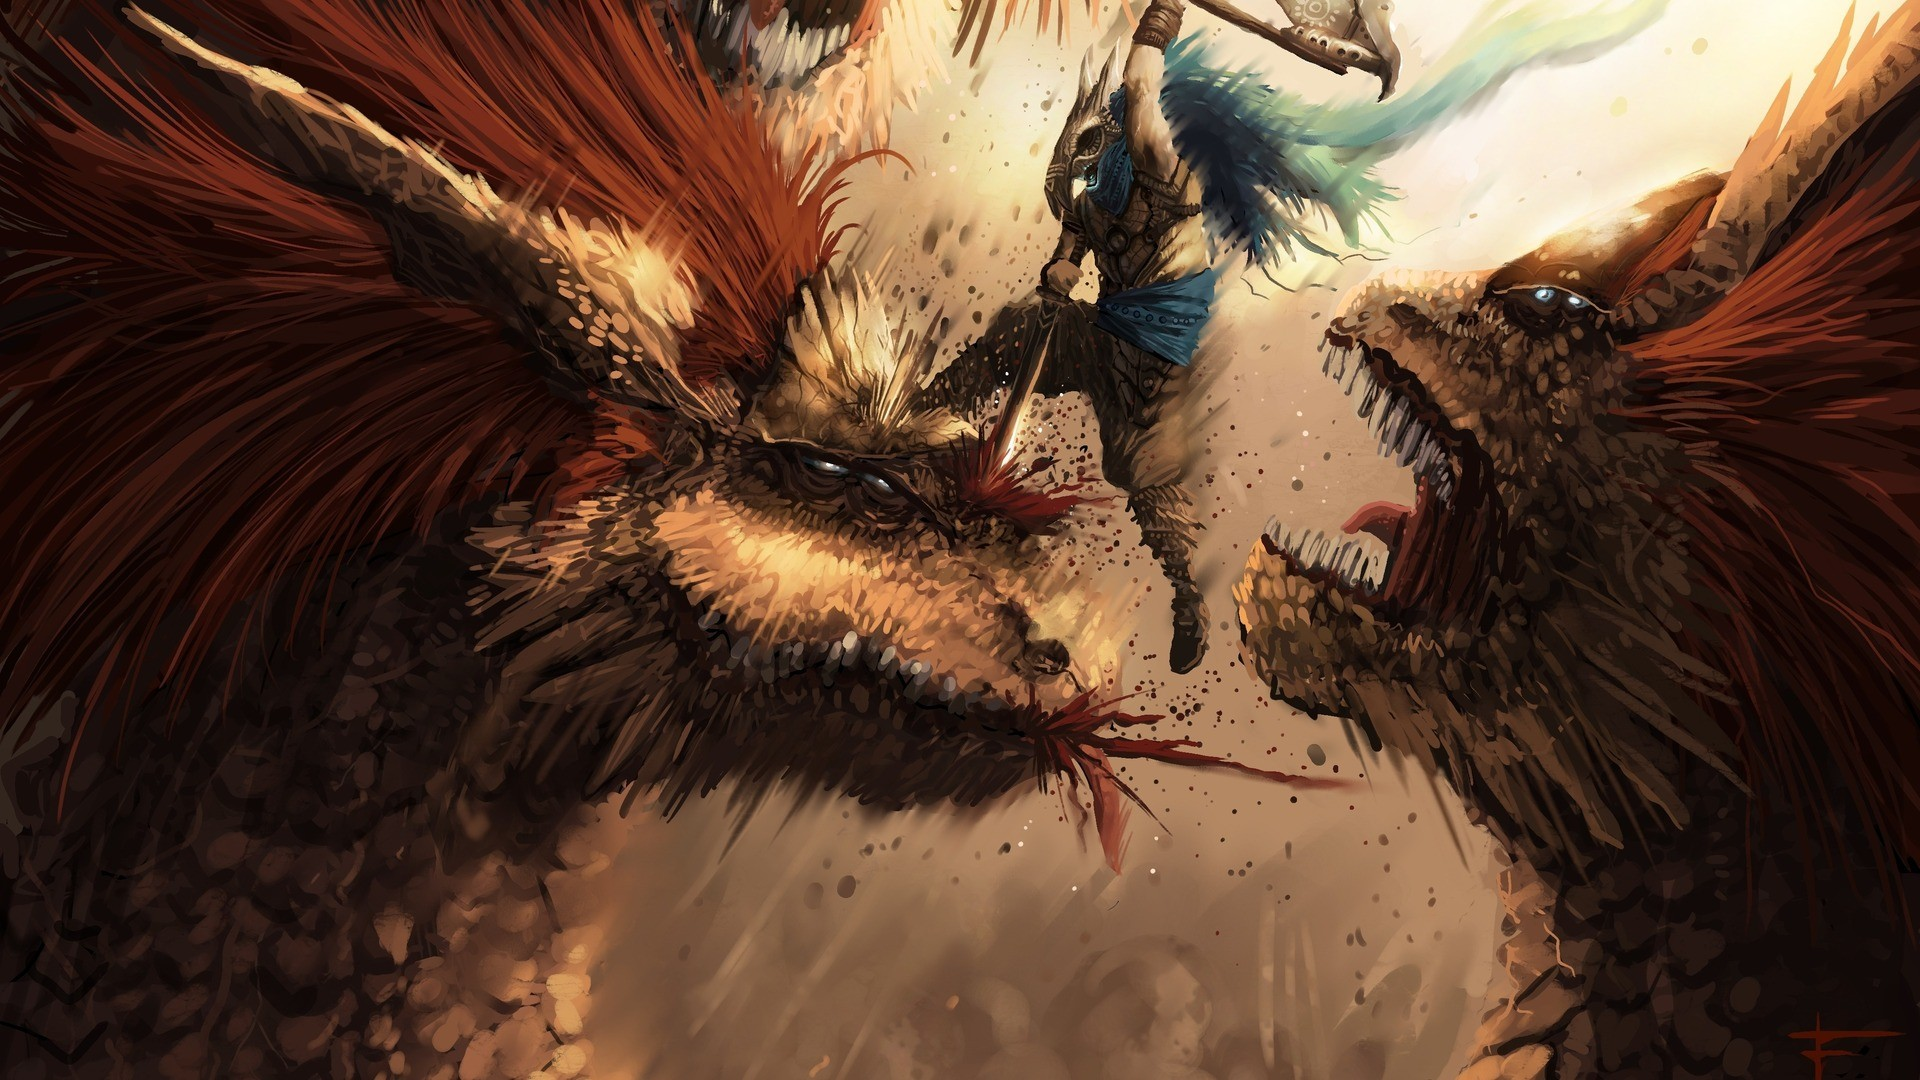 monster hunter slayer fantasy best widescreen background awesome